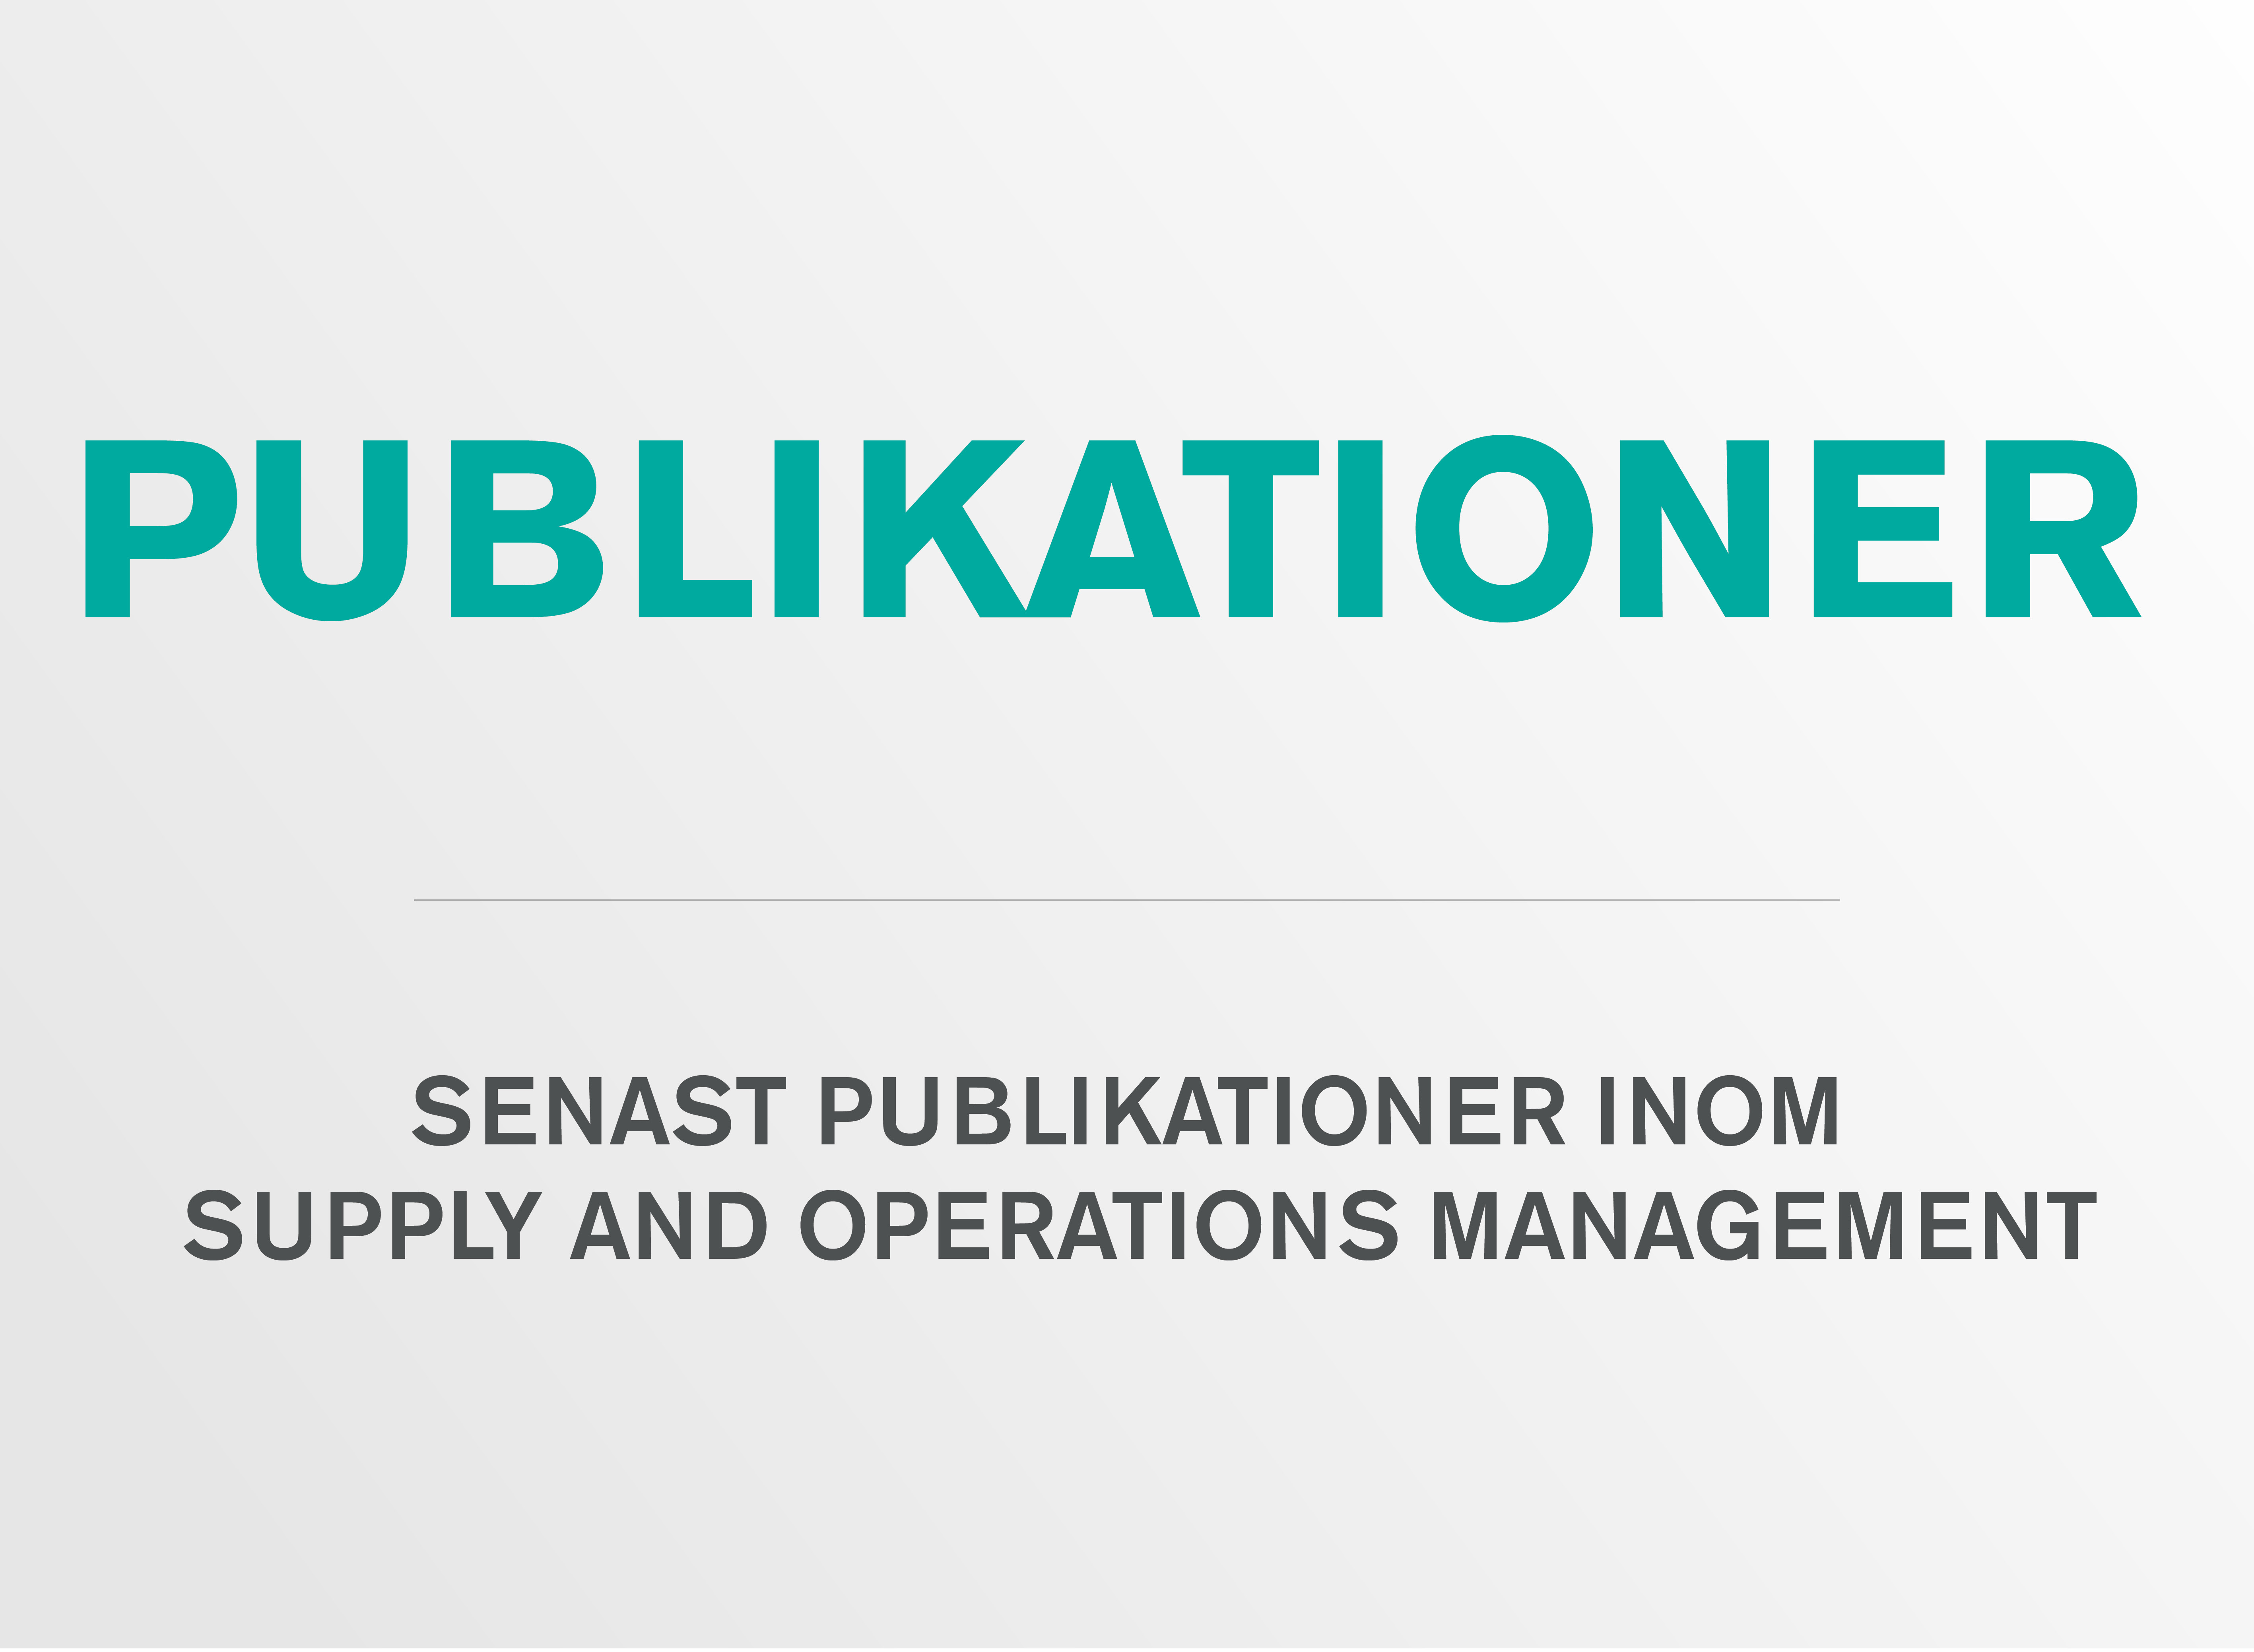 Publikationer som ligger under avdelningen för Supply and Operations Management.